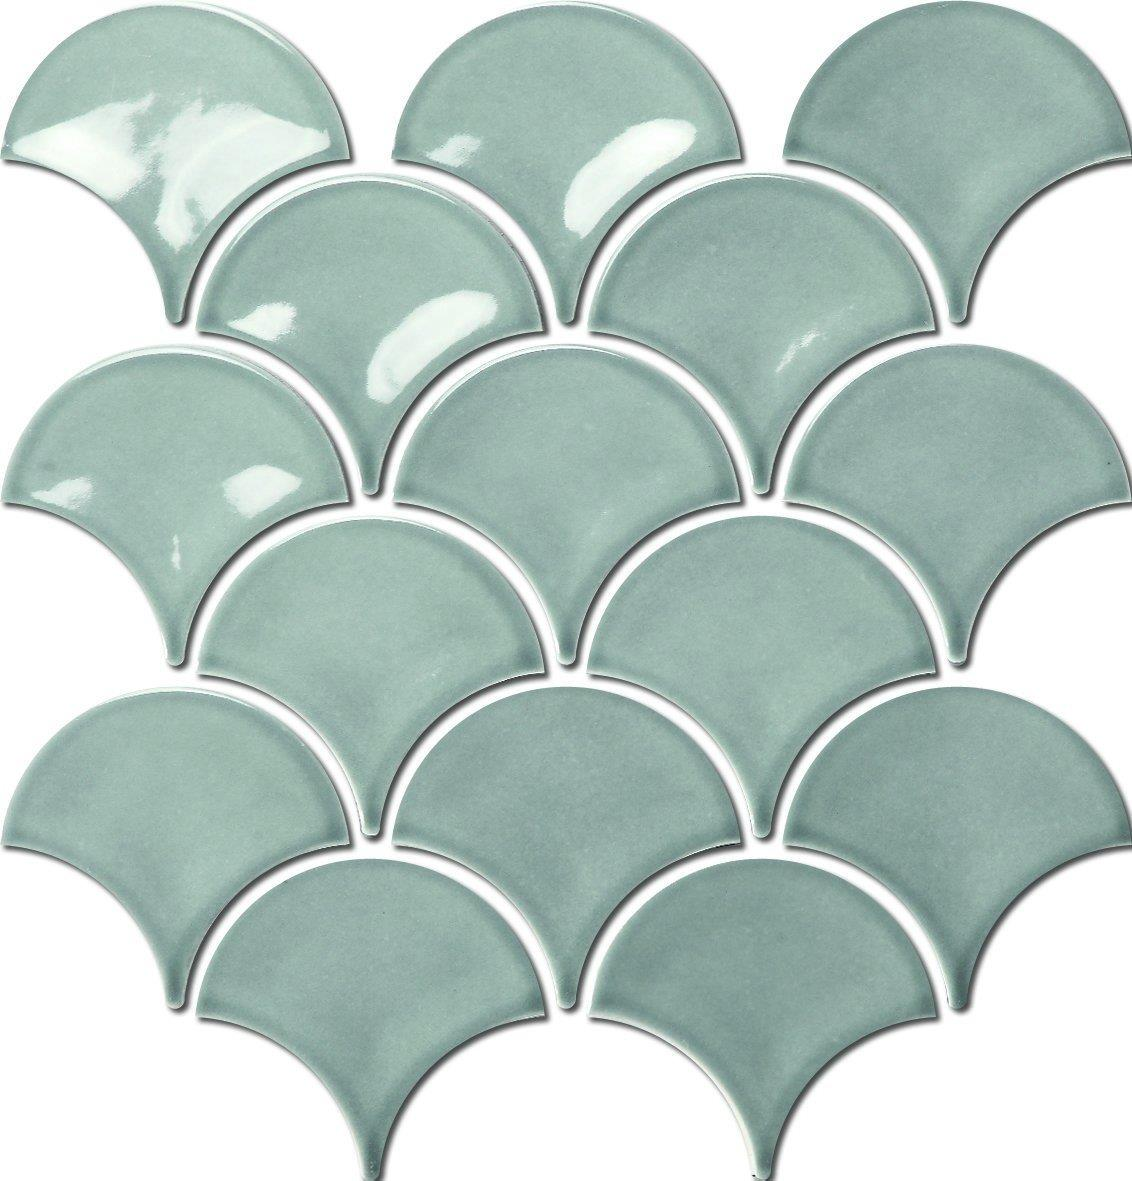 These white mosaic fish scale tiles are perfct for use in any bathroom or kitchen.